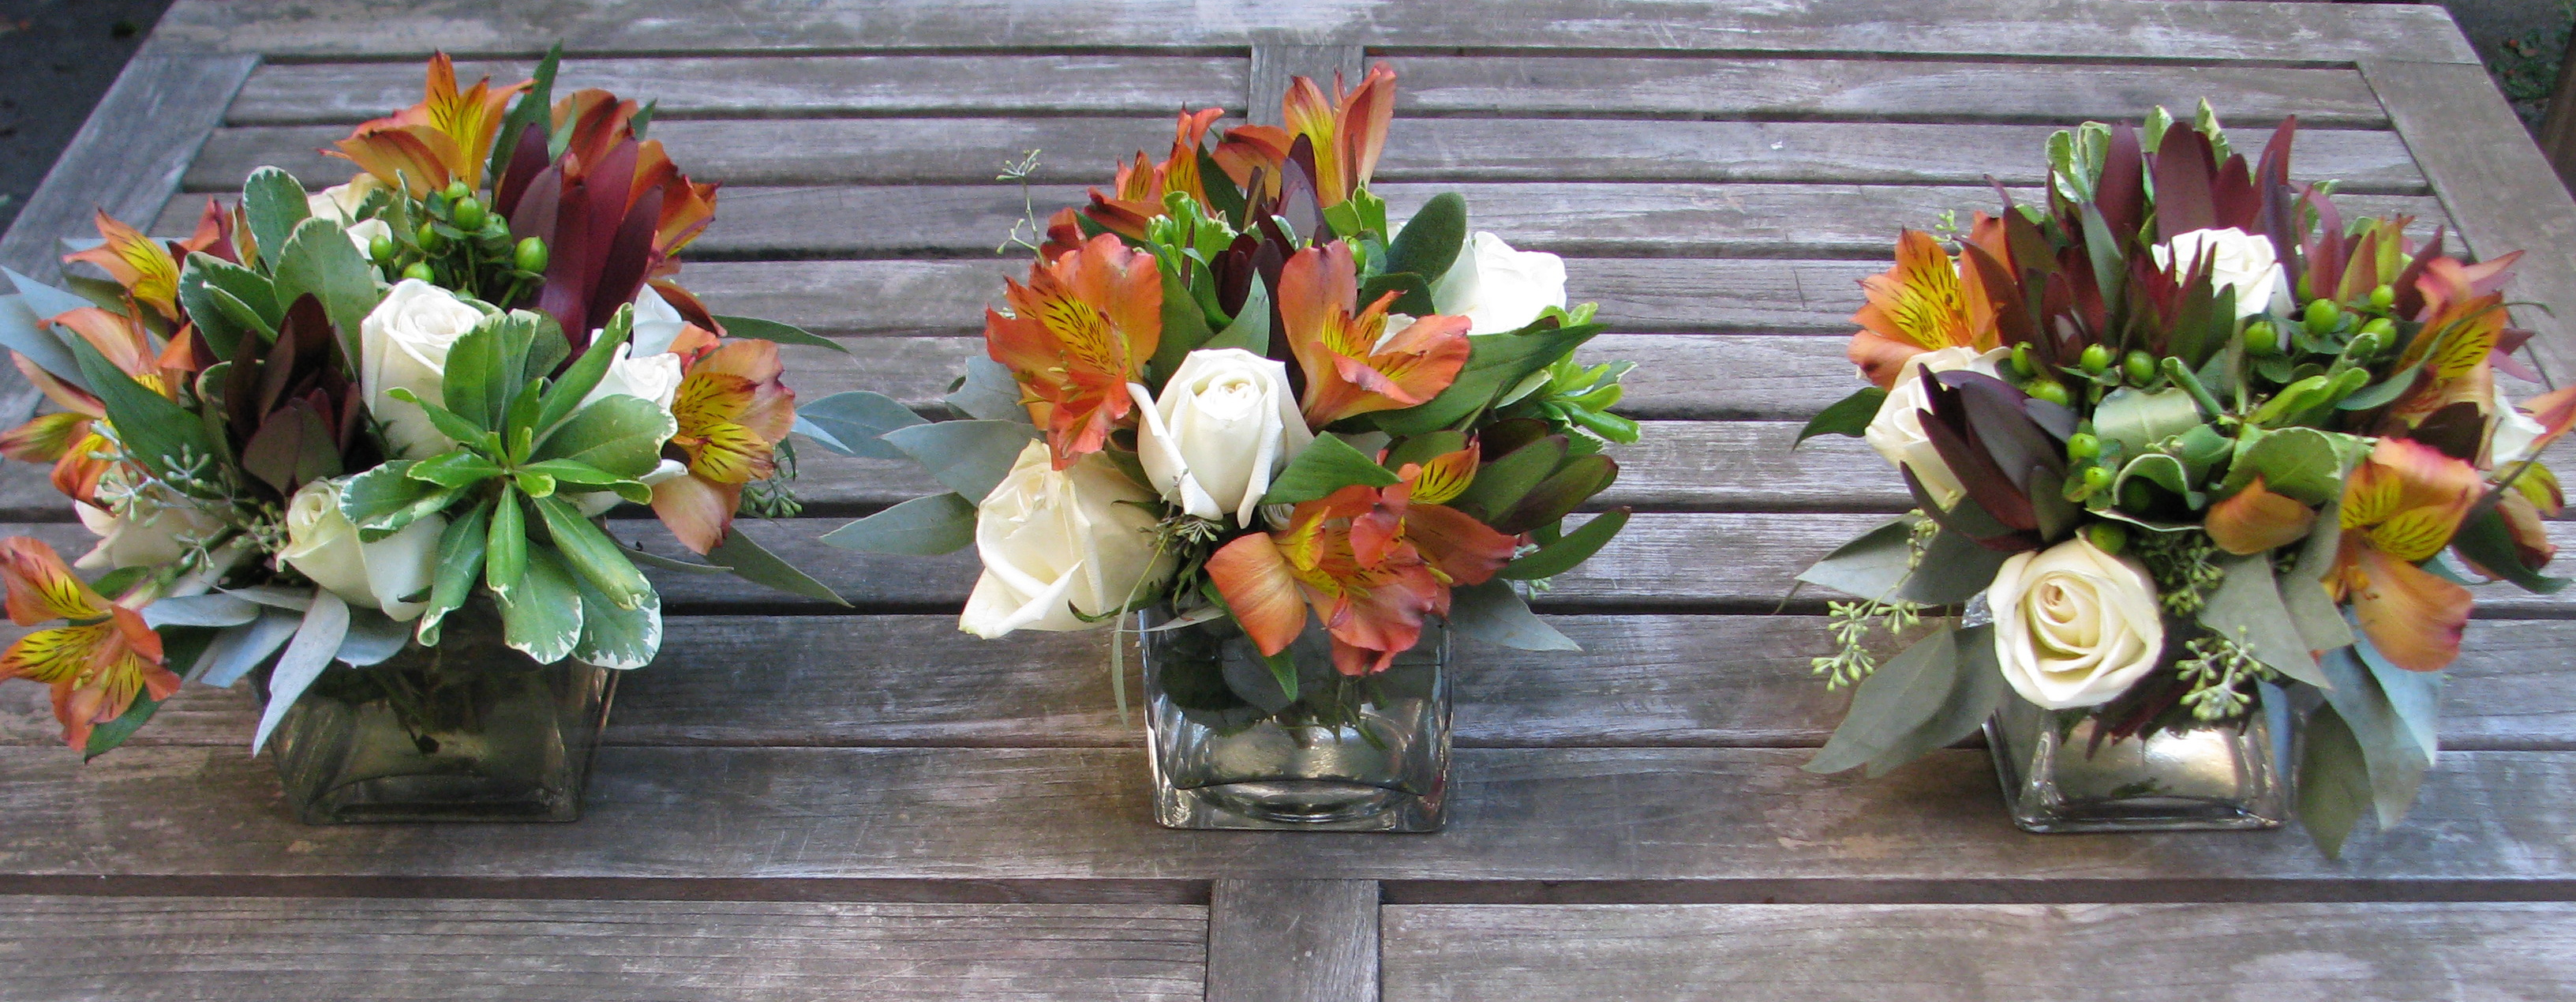 Flower Arrangement Ideas For Dinner Party Part - 50: Fall Flowers Party Planning